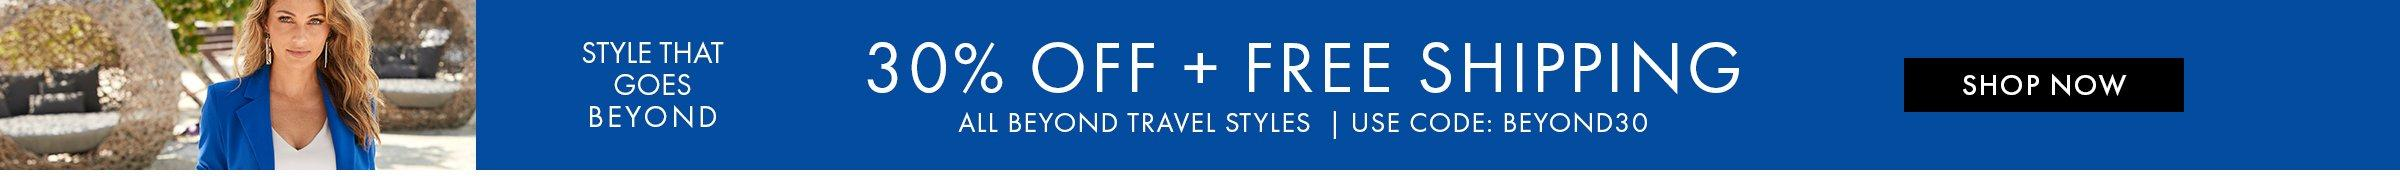 white text on blue background: style that goes beyond. 30% off + free shipping all beyond travel styles .use code: beyond30. shop now.